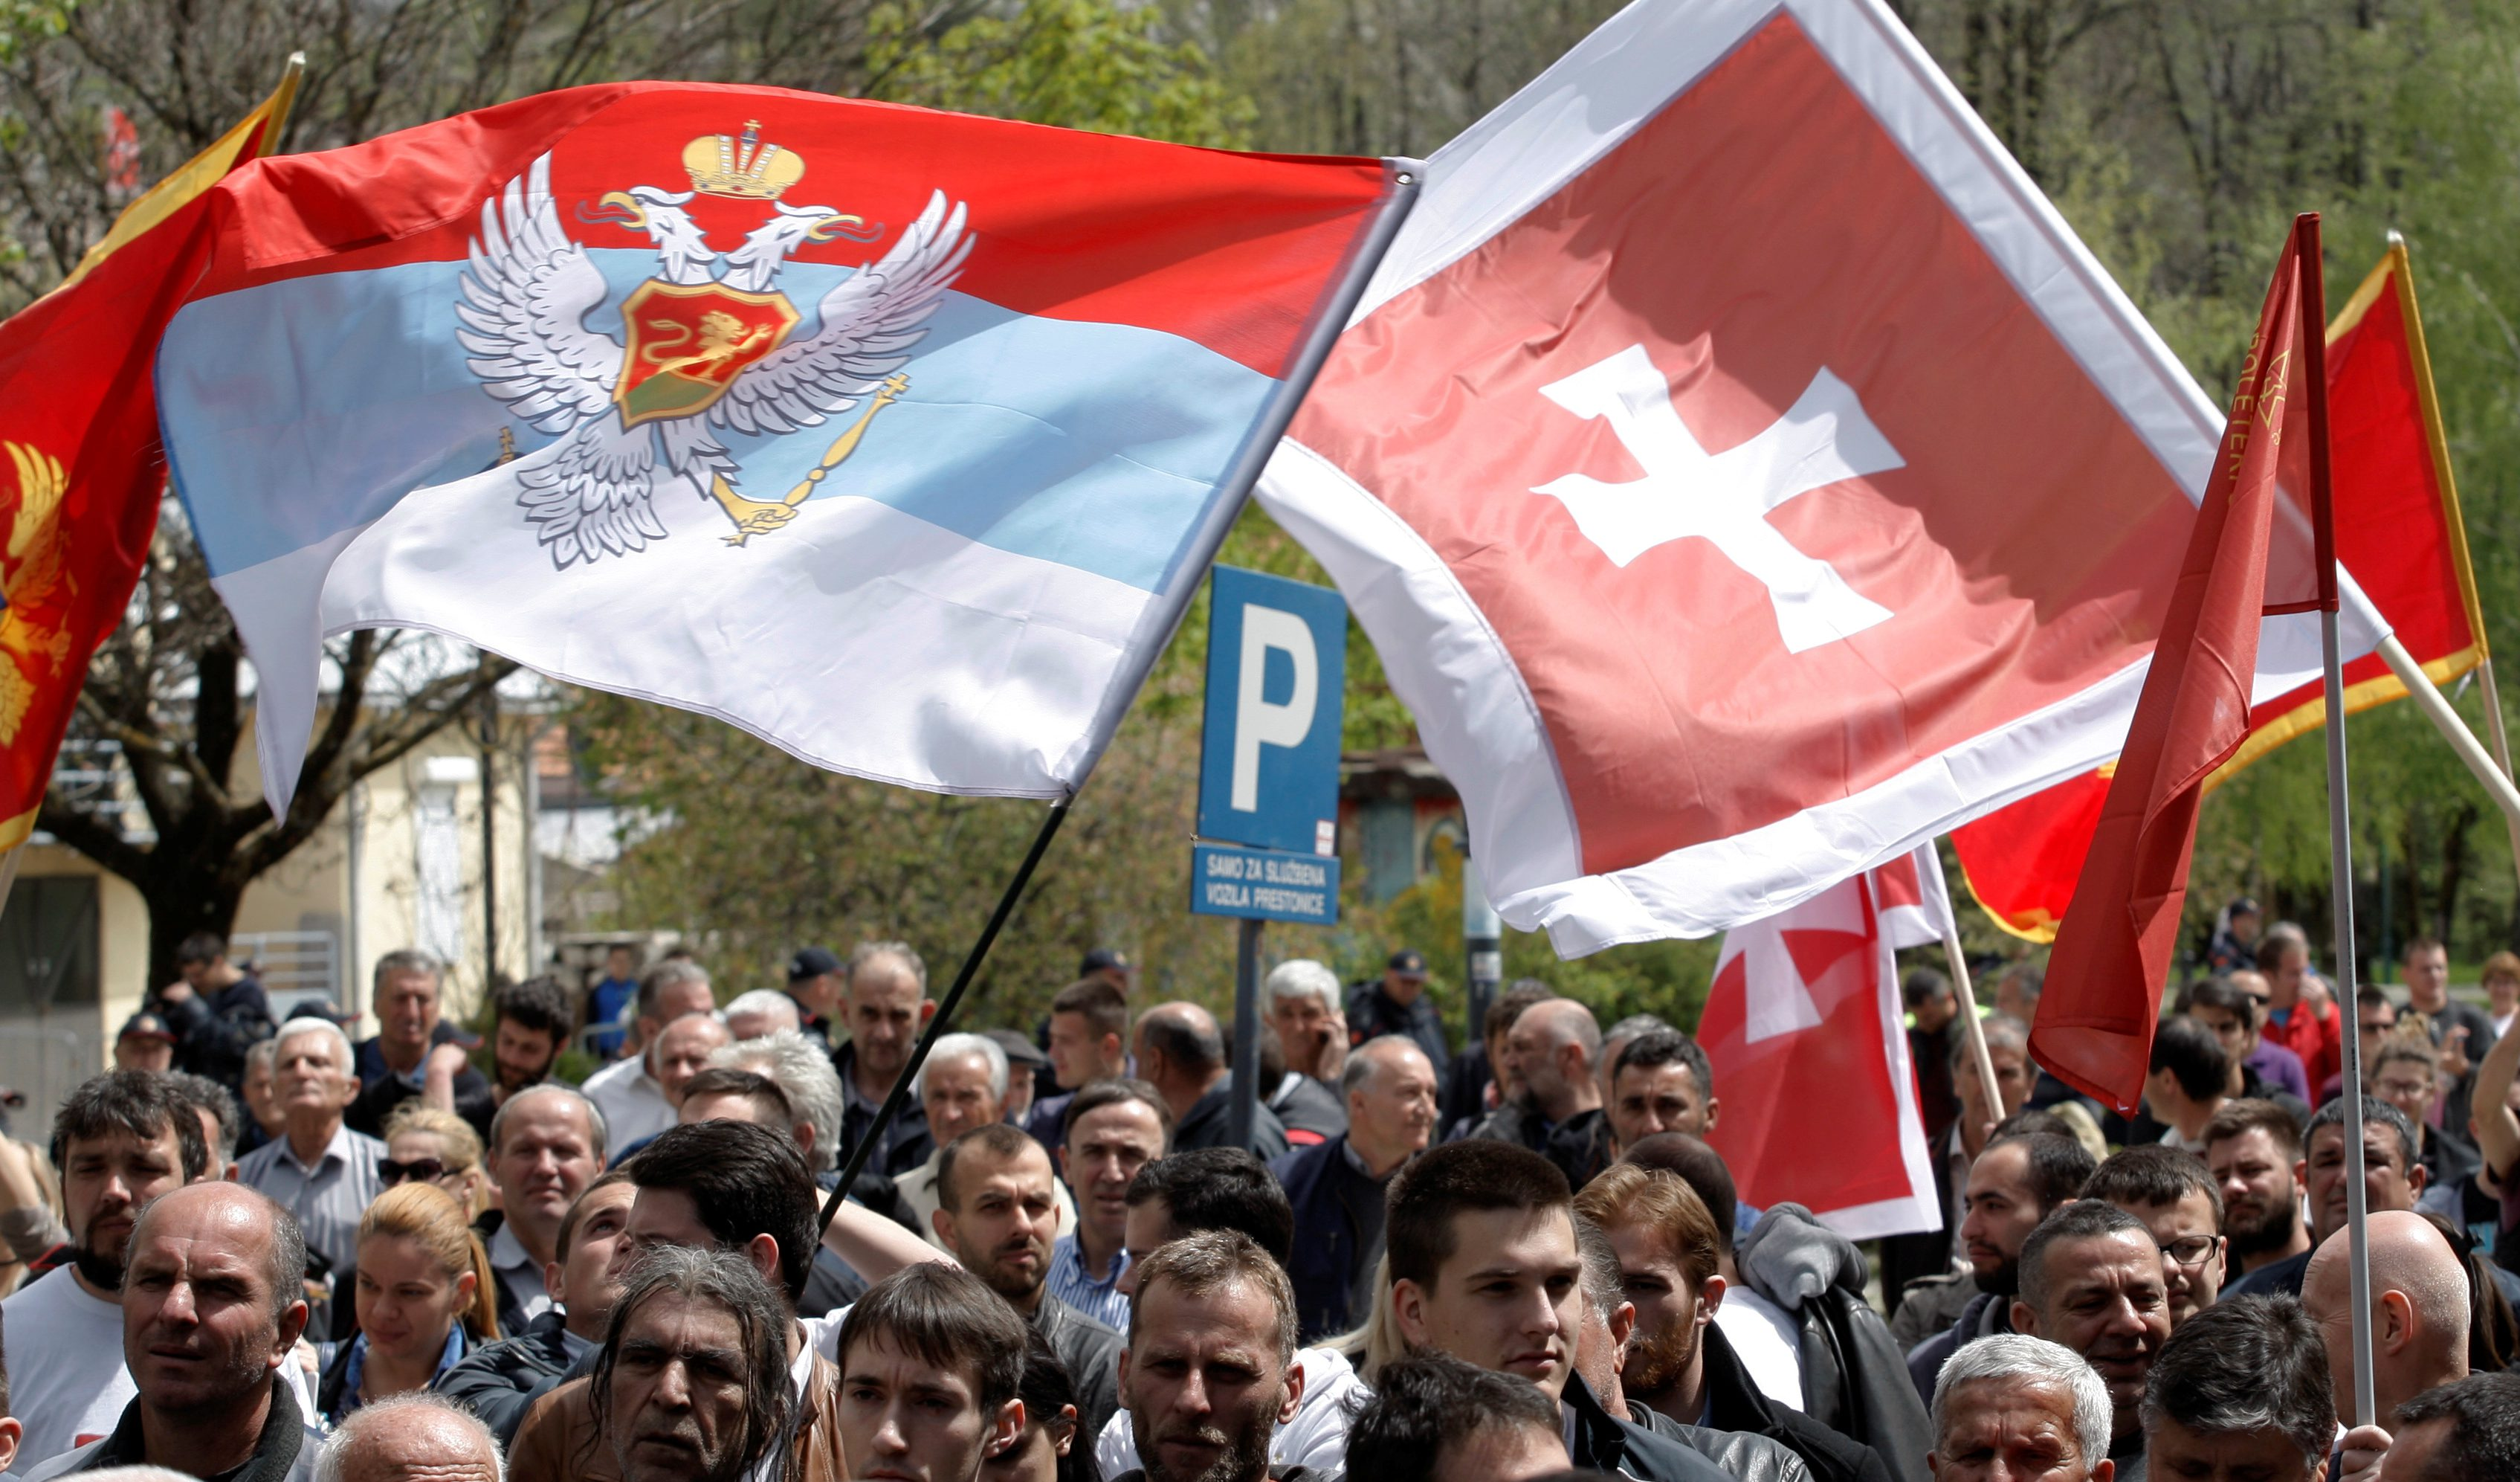 Demonstrators wave flags during anti-NATO protest as Montenegro's parliament discusses NATO membership agreement in Cetinje, Montenegro, April 28, 2017.